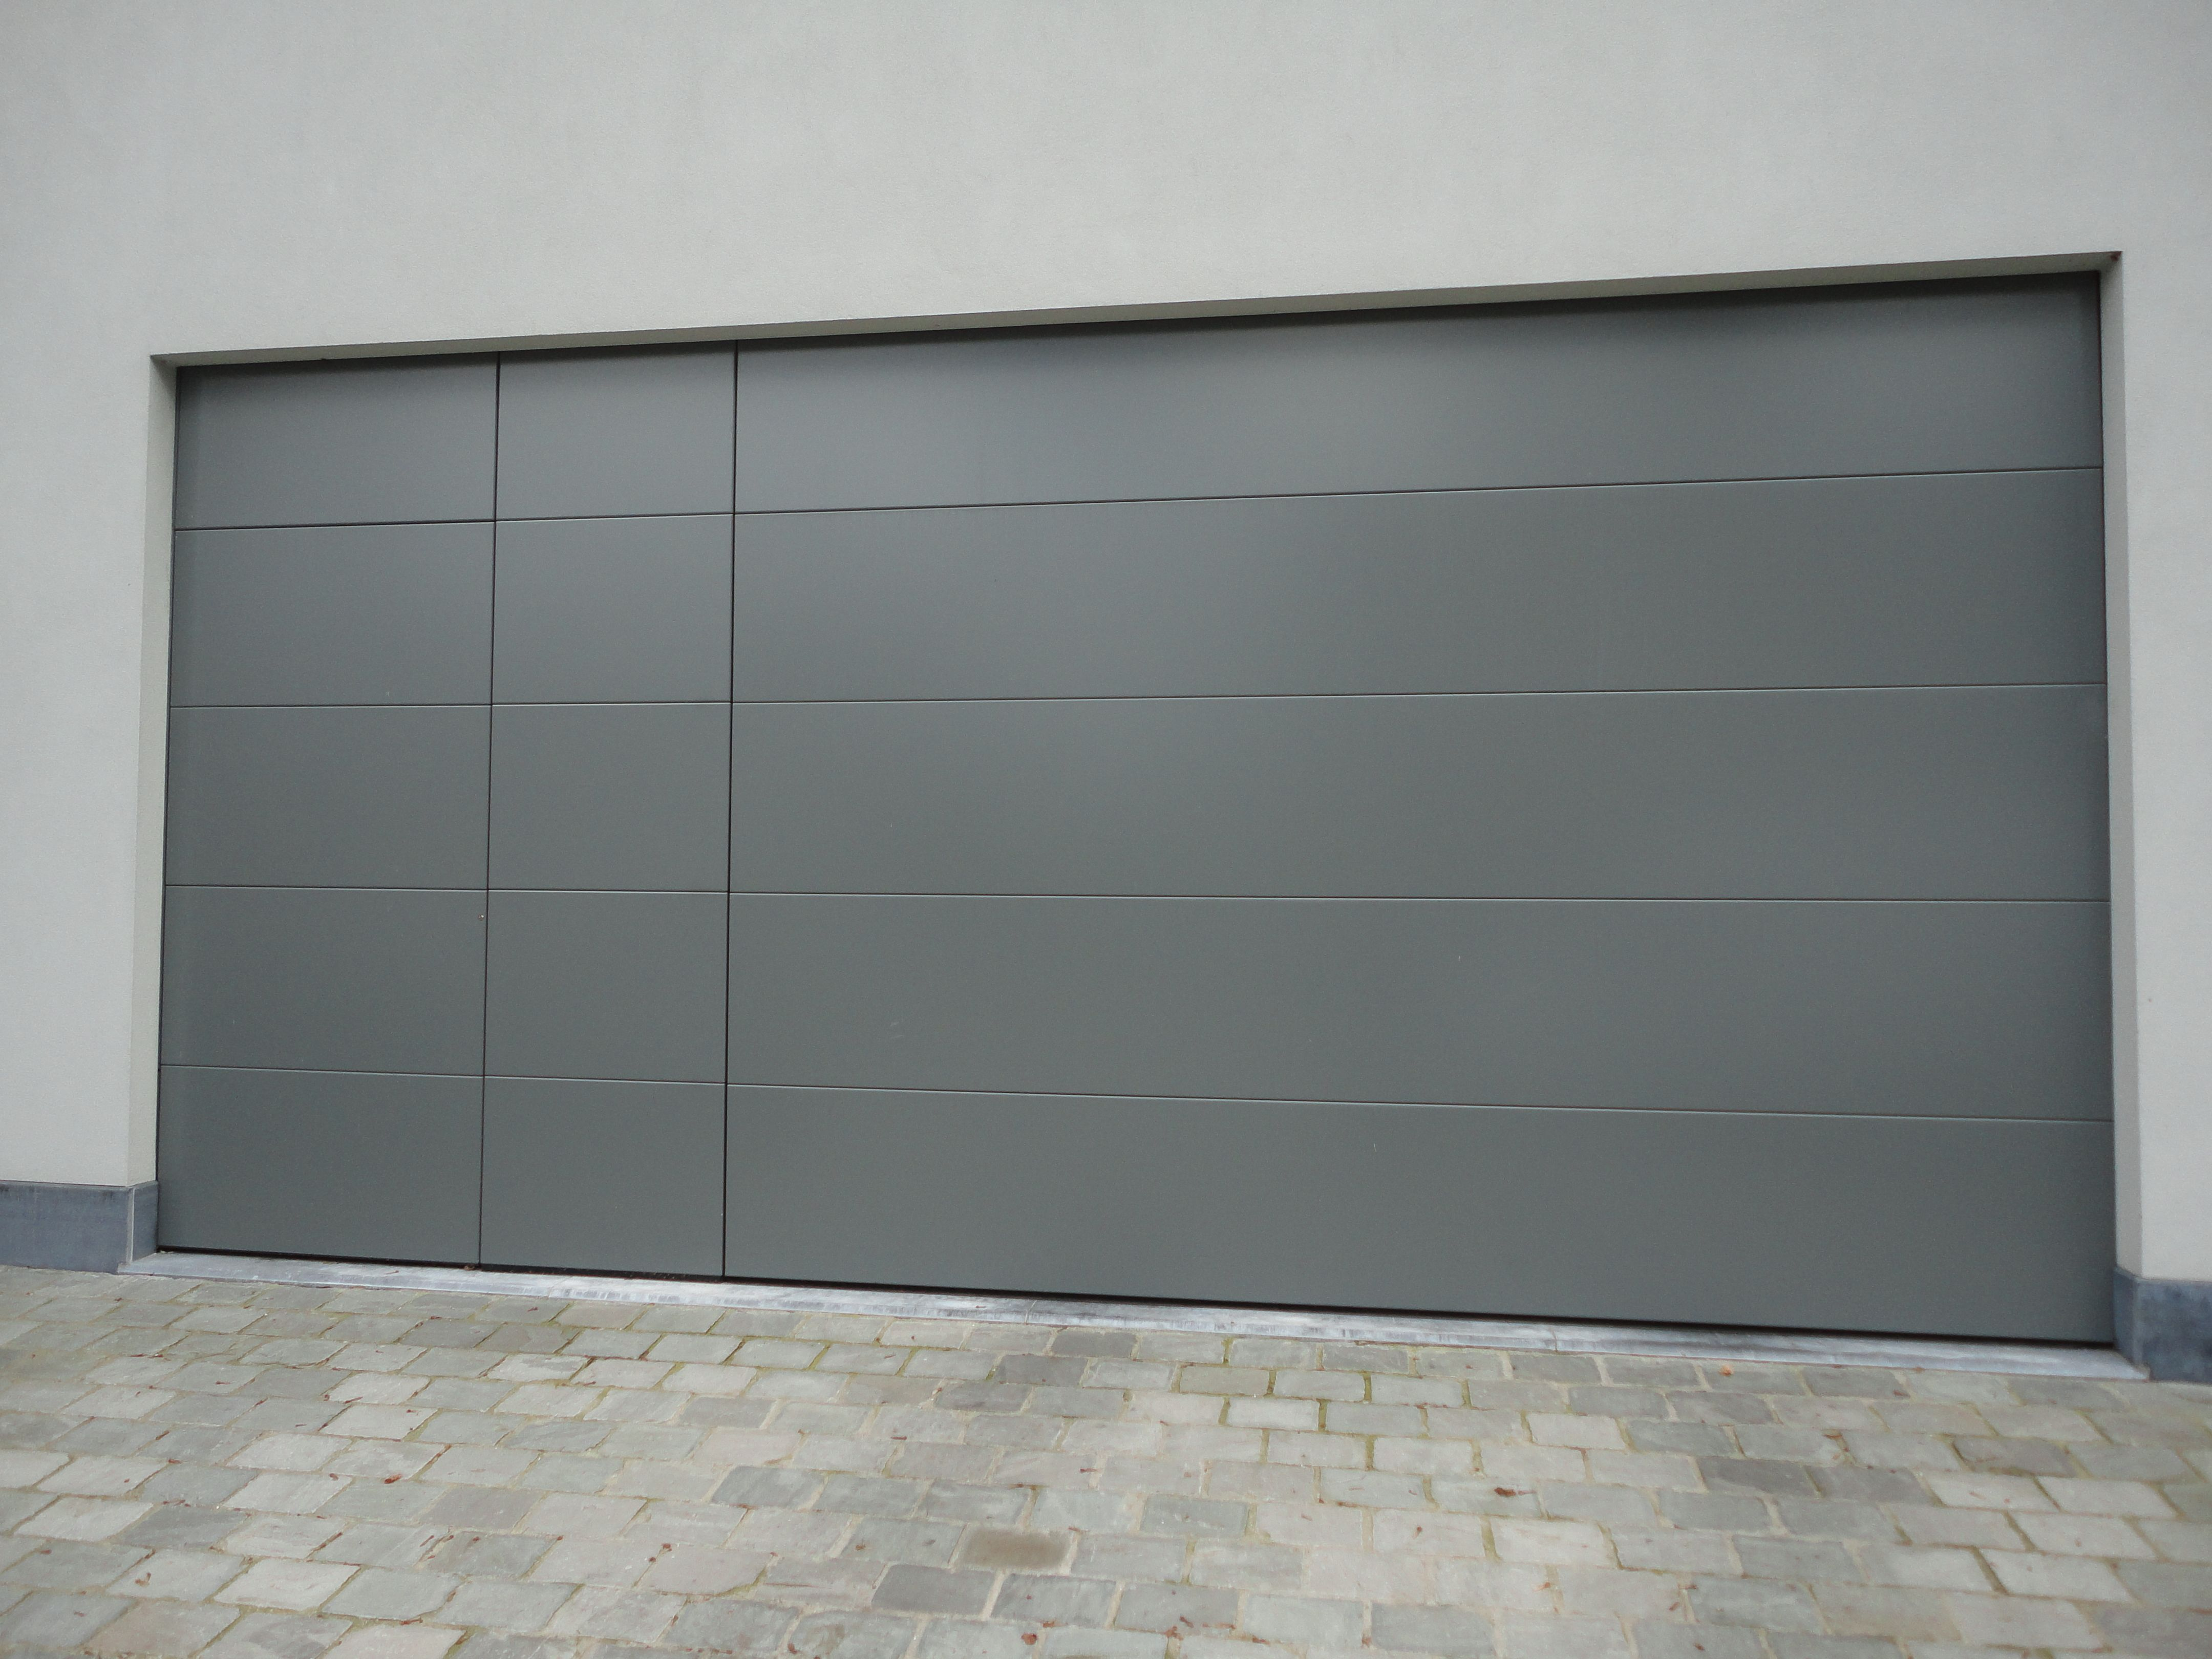 garagepoort sectionaalpoort met deur poort en vaste wand in hetzelfde vlak aluminium. Black Bedroom Furniture Sets. Home Design Ideas